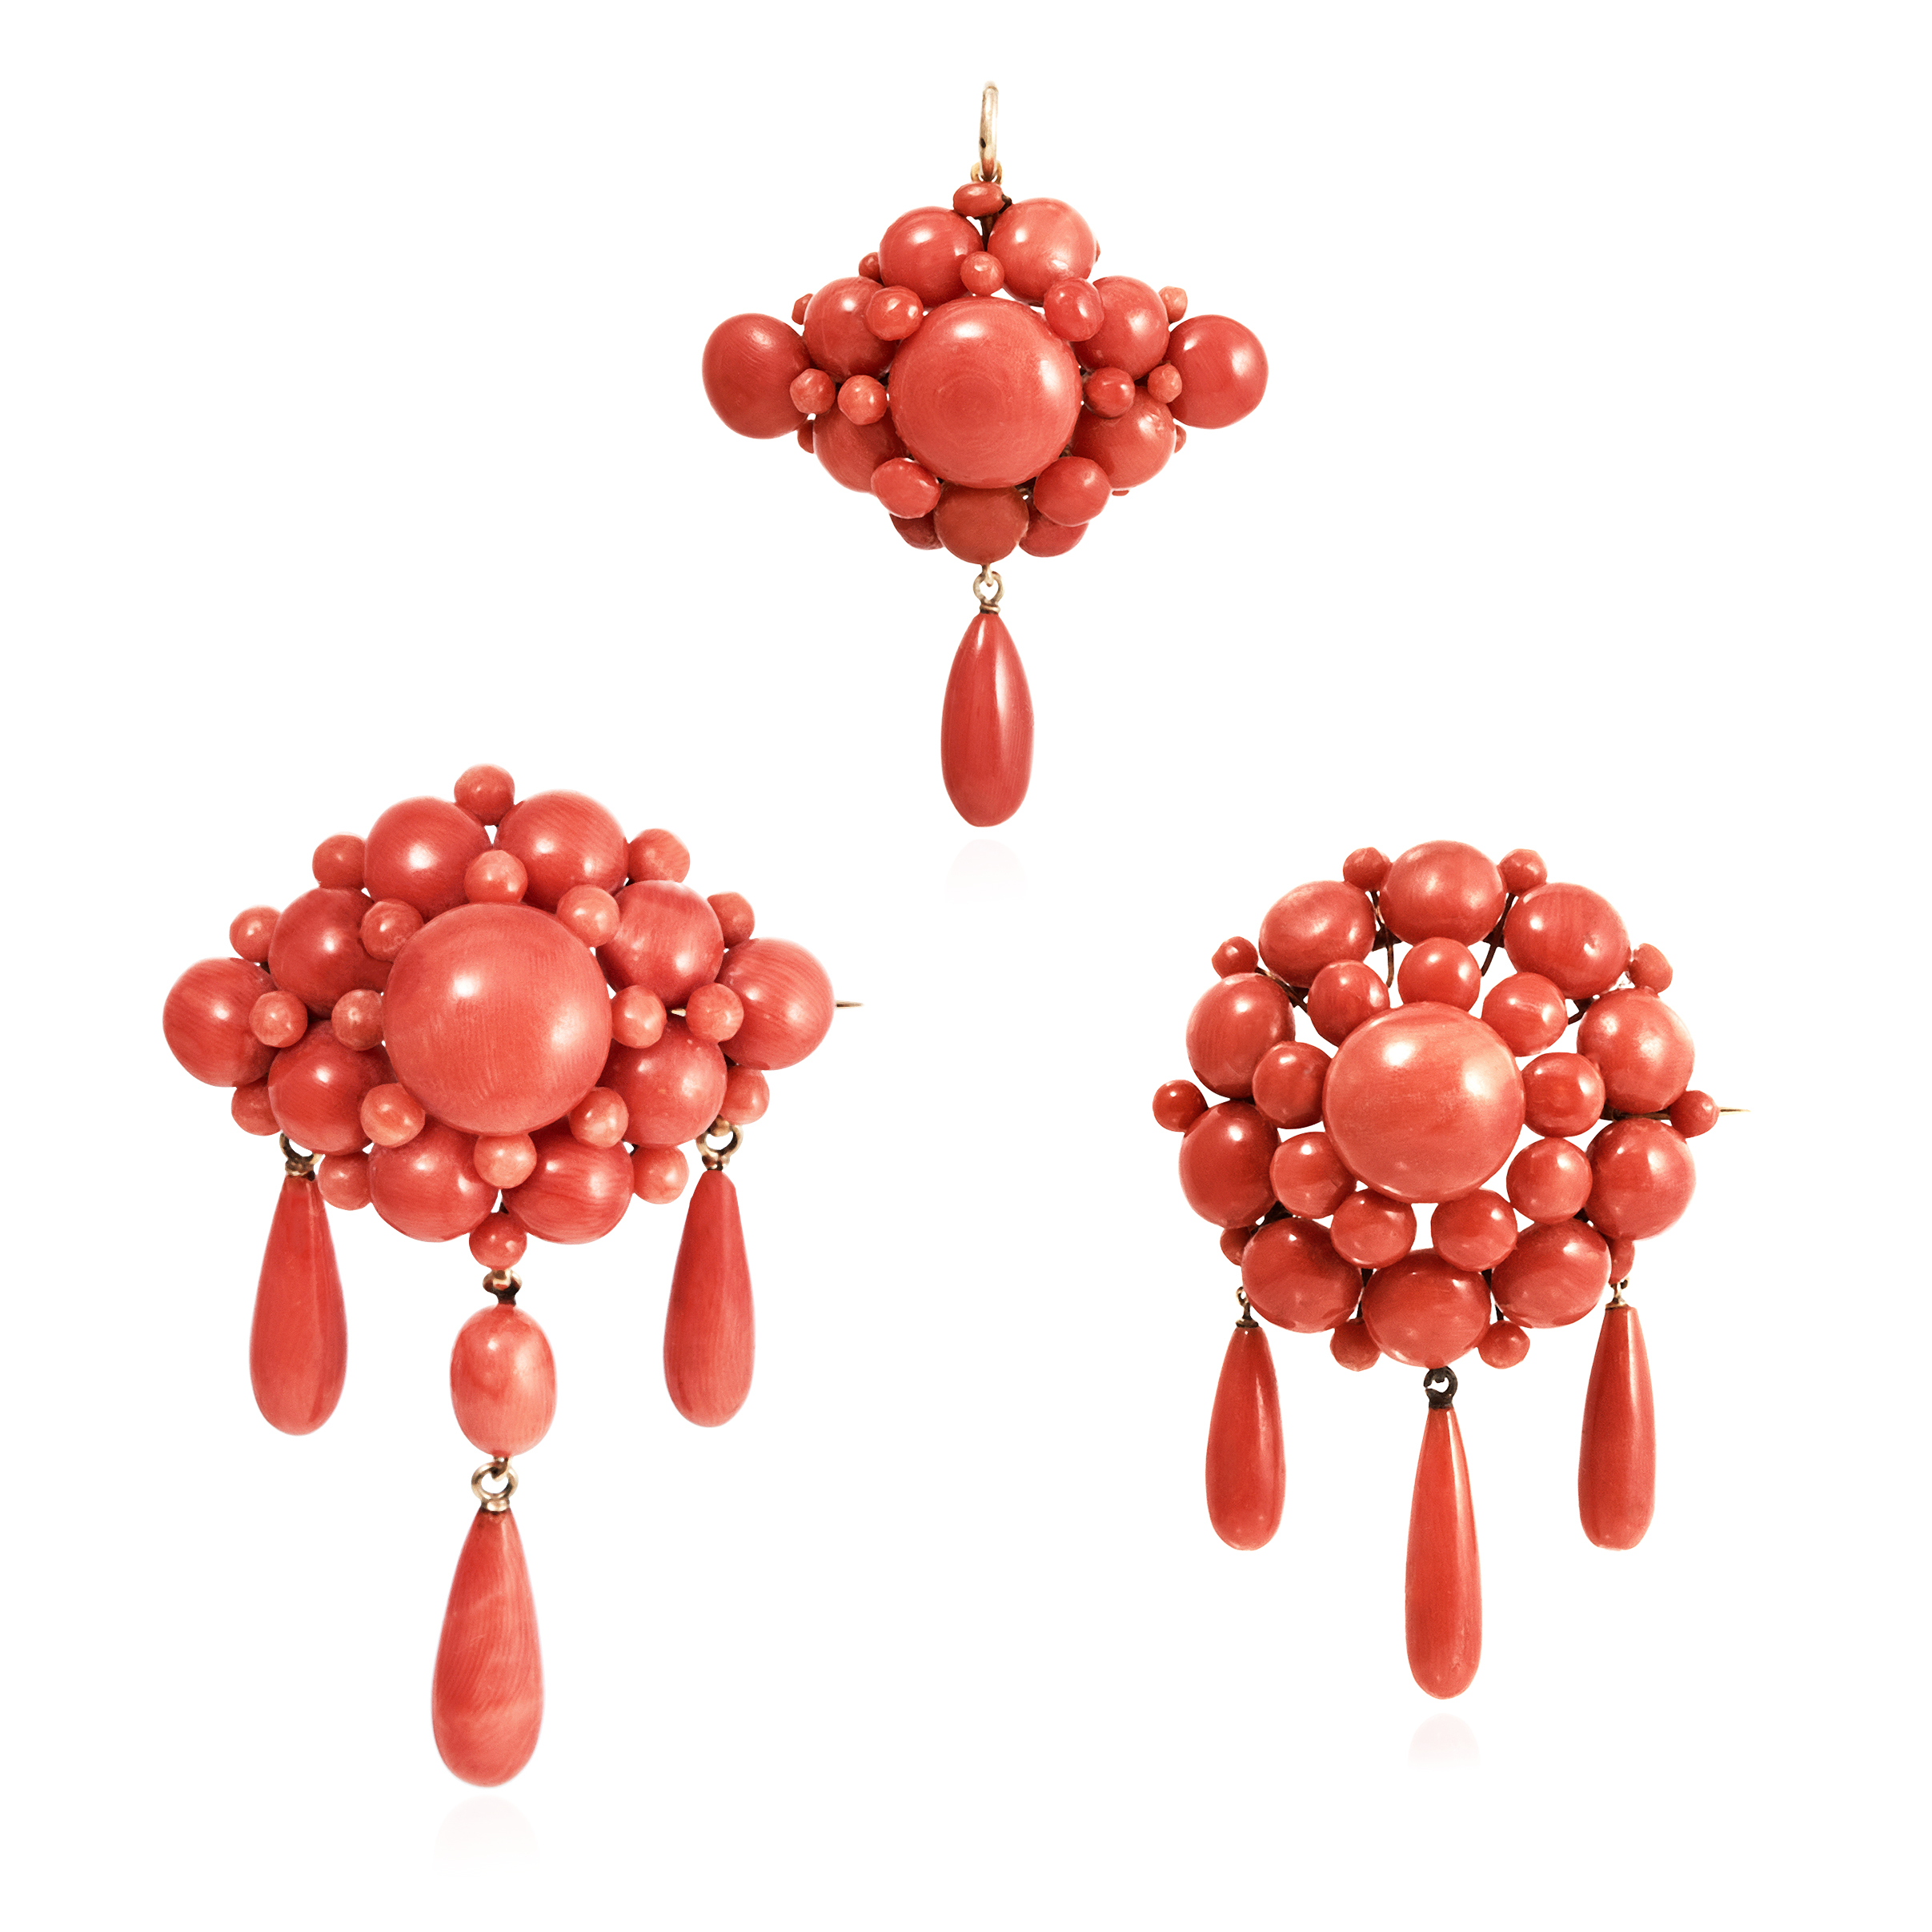 Los 17 - THREE ANTIQUE CORAL BROOCHES, ITALIAN CIRCA 1860 each designed as a cluster of coral beads